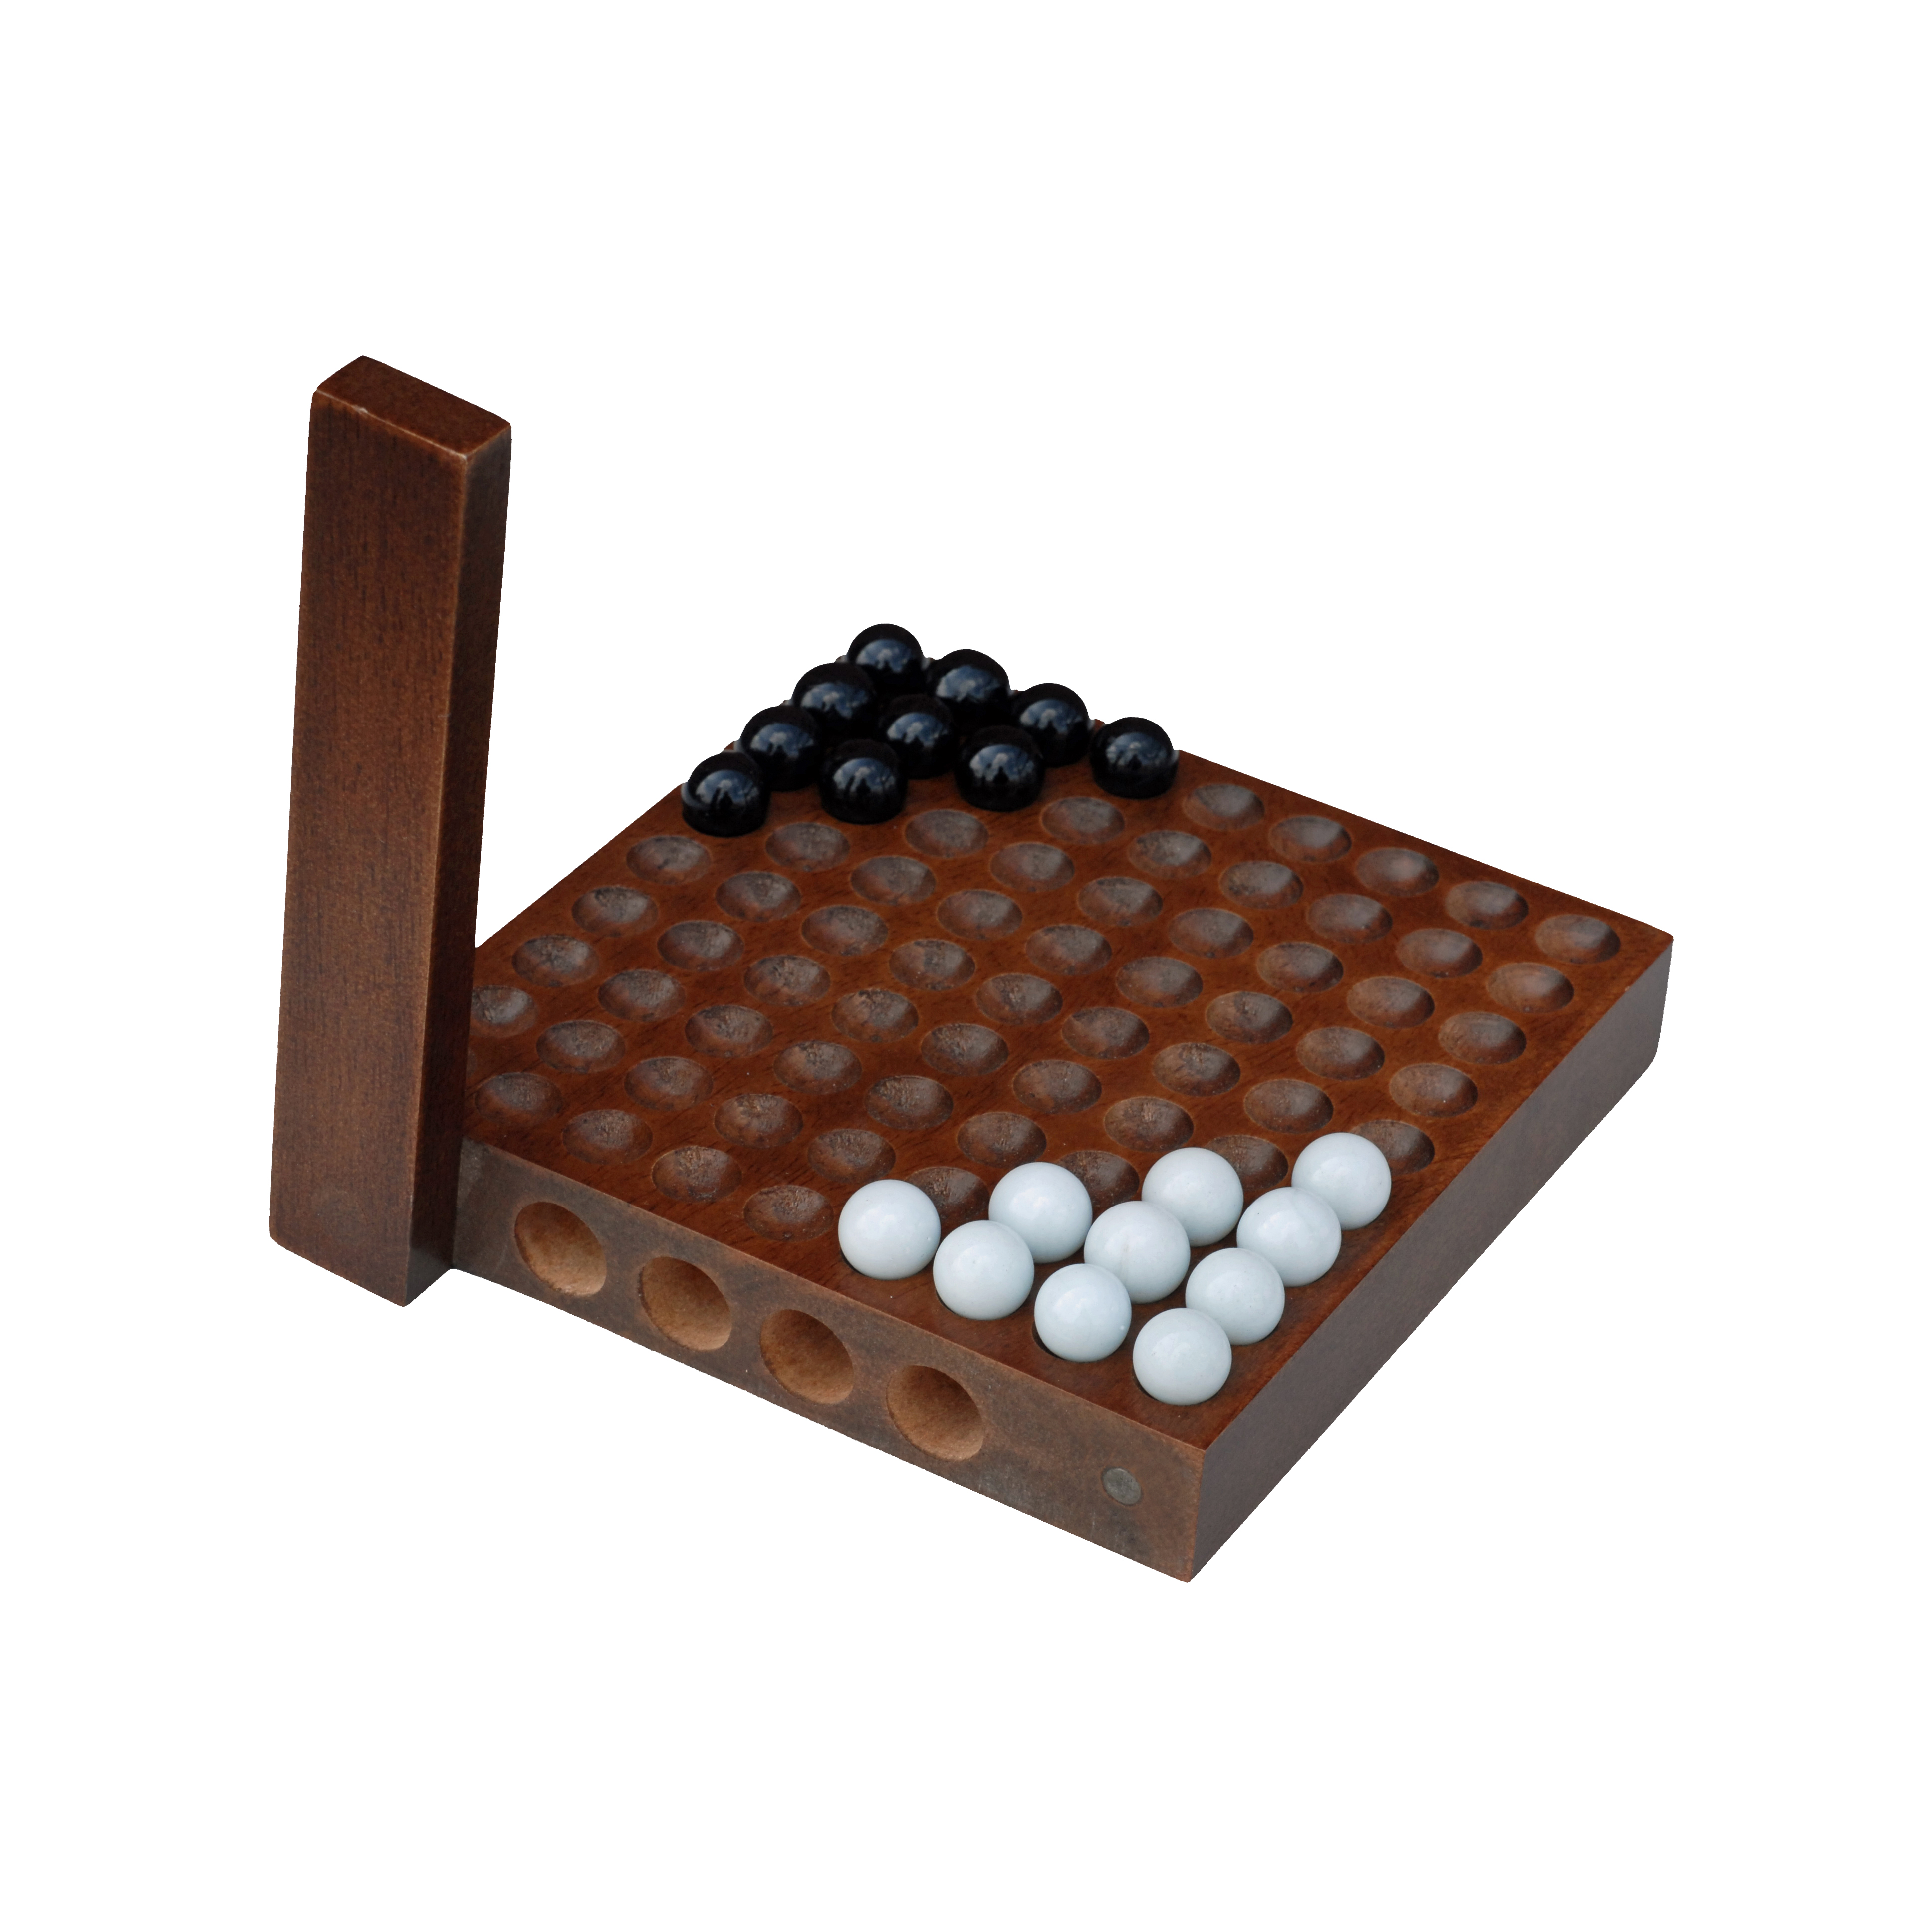 Classic Chinese Checkers 5 Inch Travel Size Wood